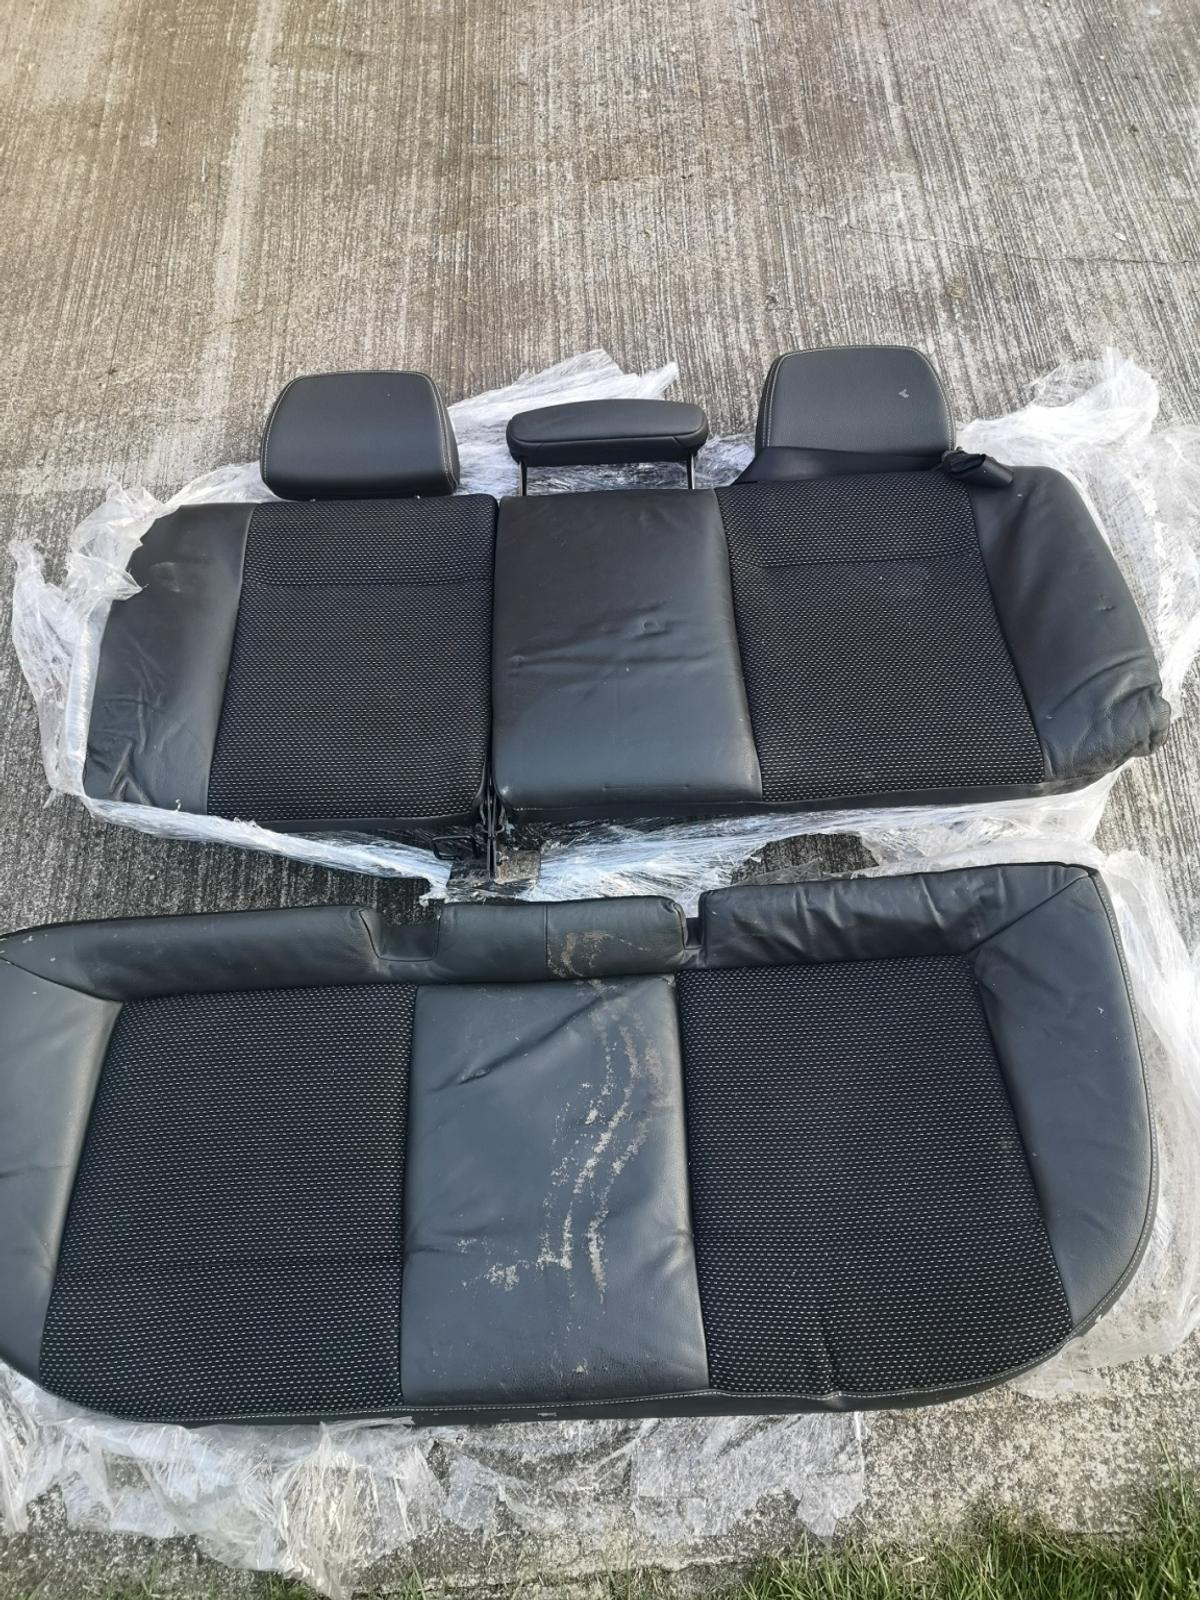 Rear seats Vxr Astra in Watton for £10 00 for sale - Shpock